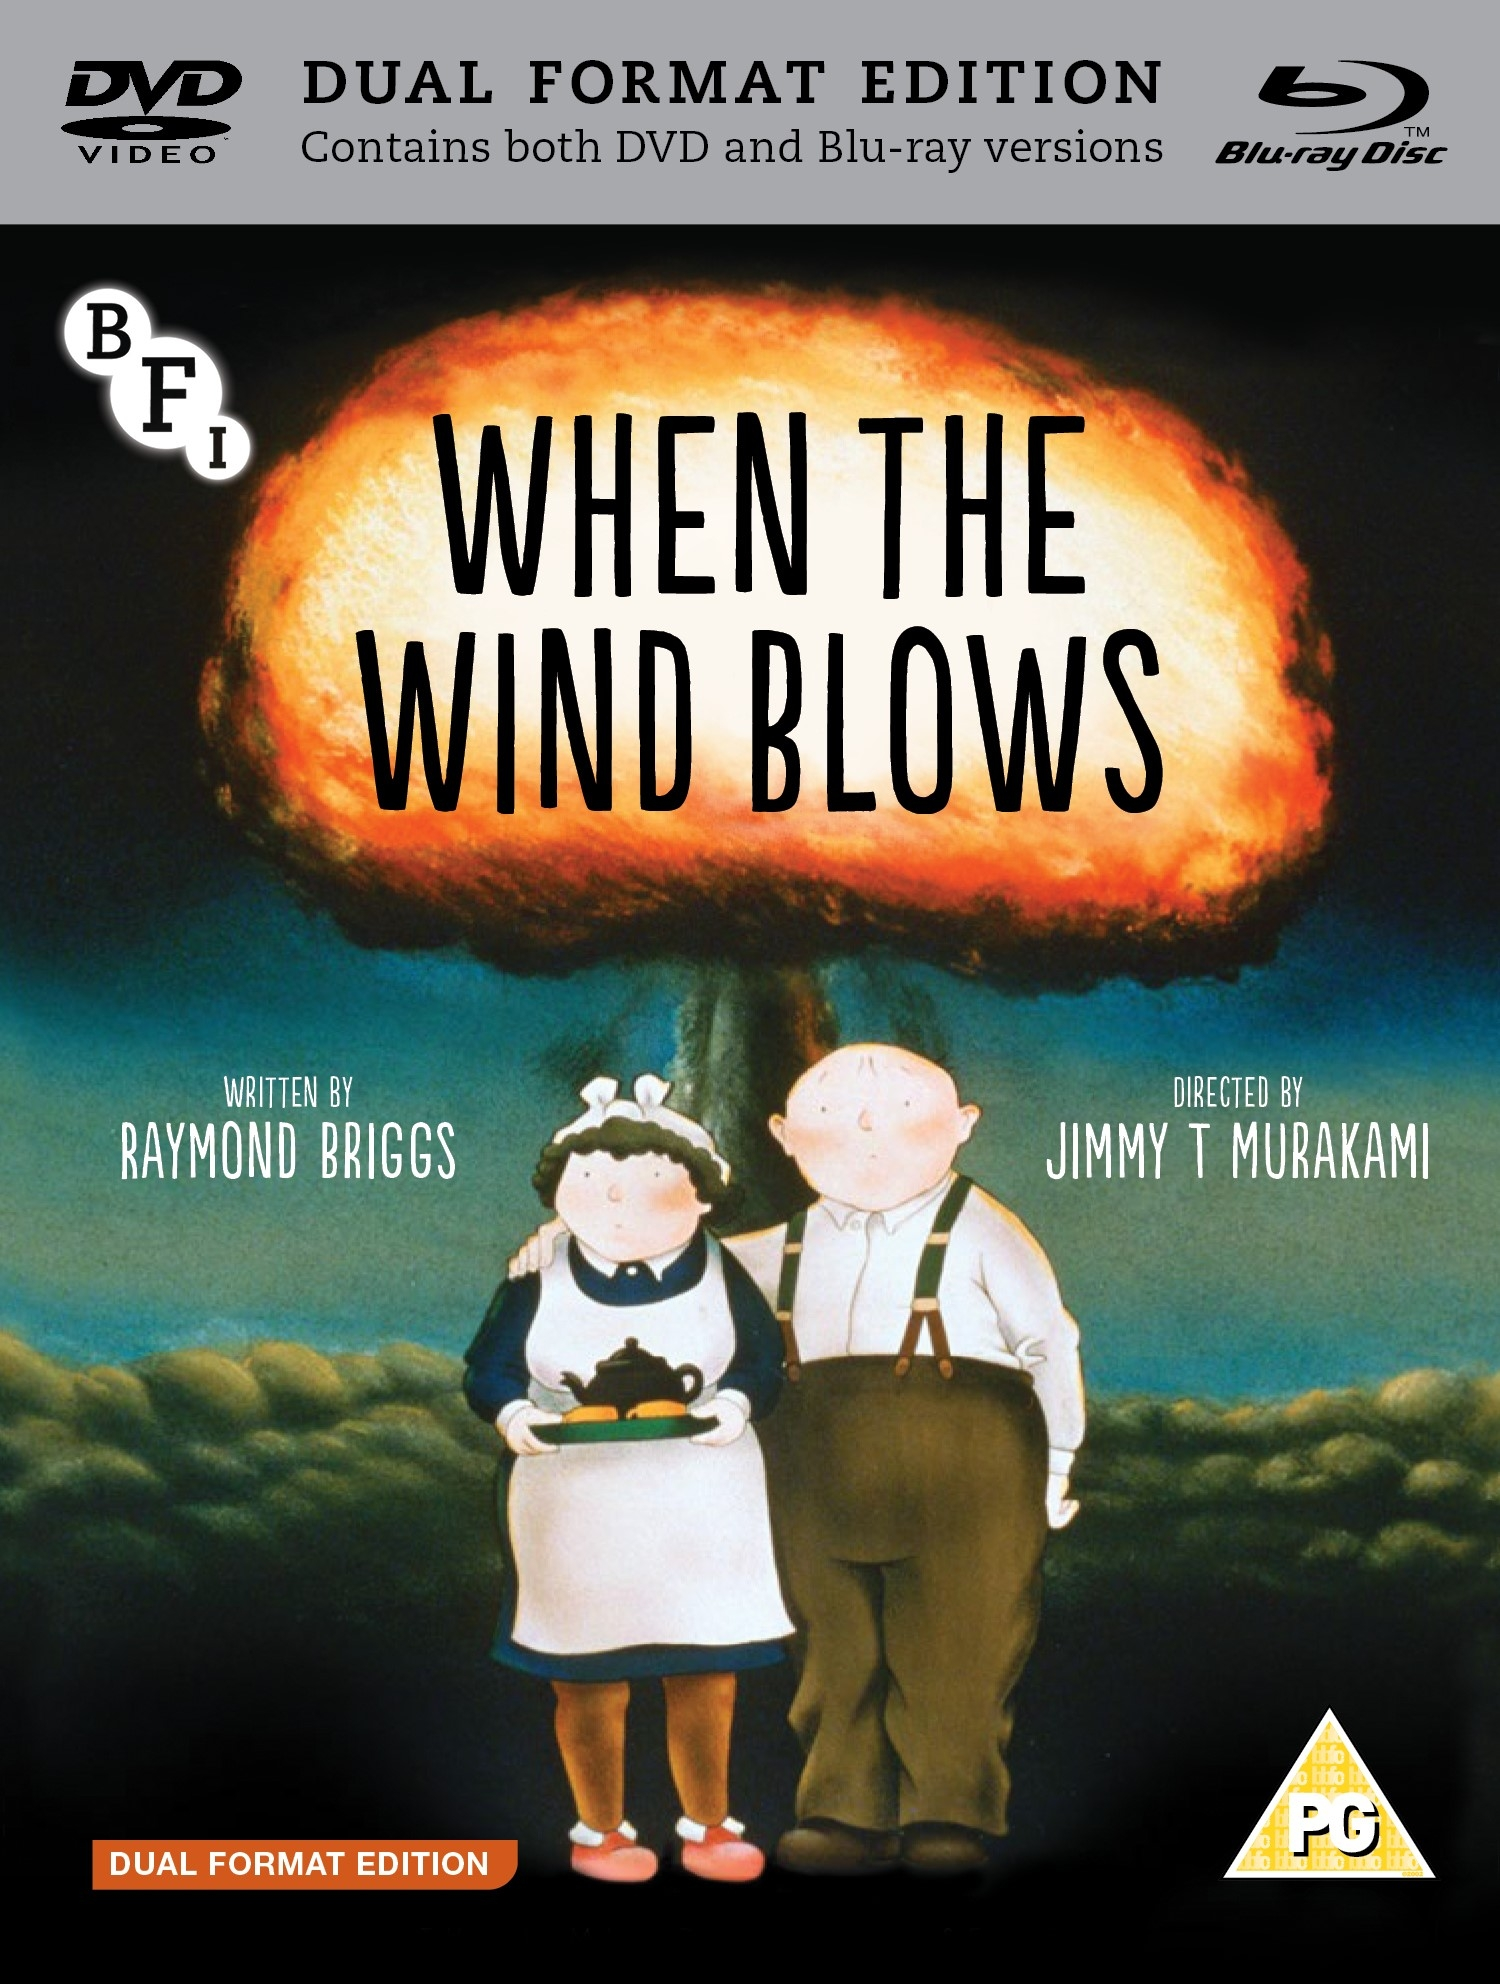 Buy When the Wind Blows (Dual Format Edition)